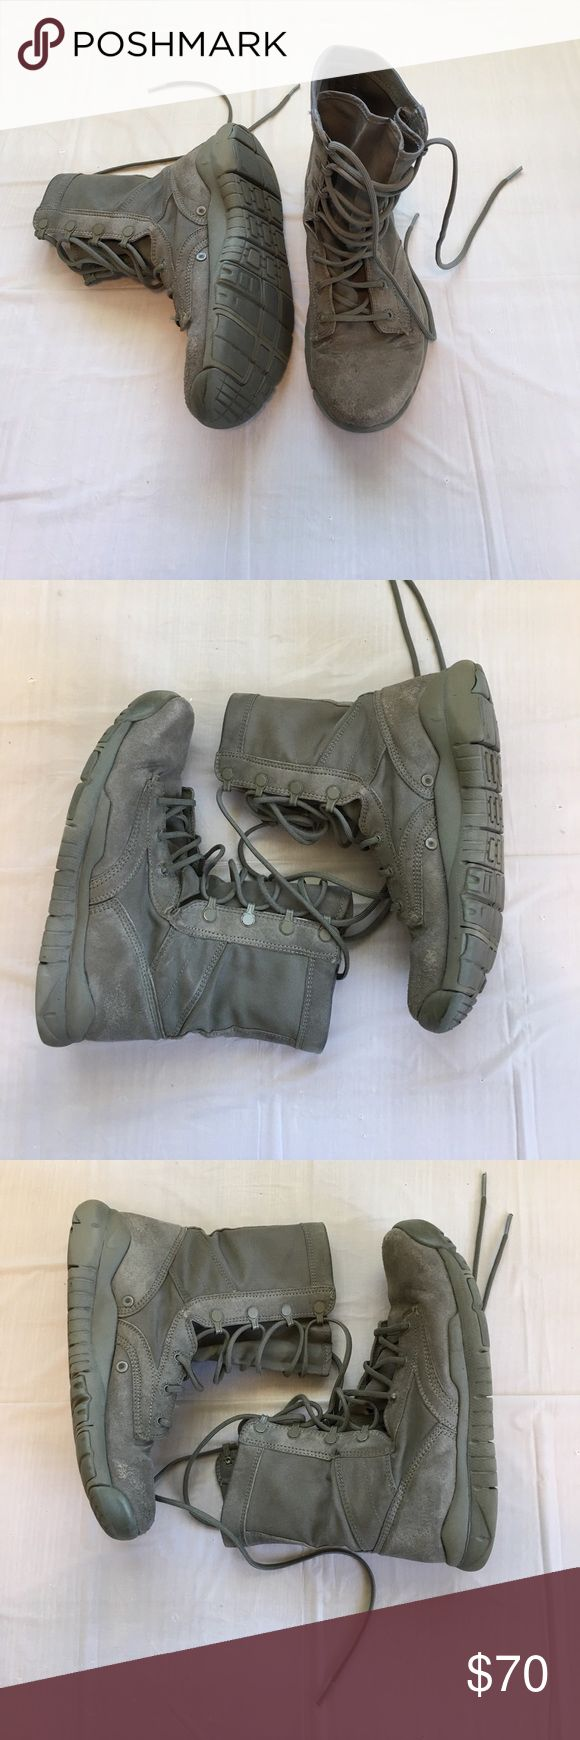 Nike SFB Special Field Boots size 7 These have flaws such as holes, discoloration and fading, piling, and some stuck on residue. No trades. Nike Shoes Boots